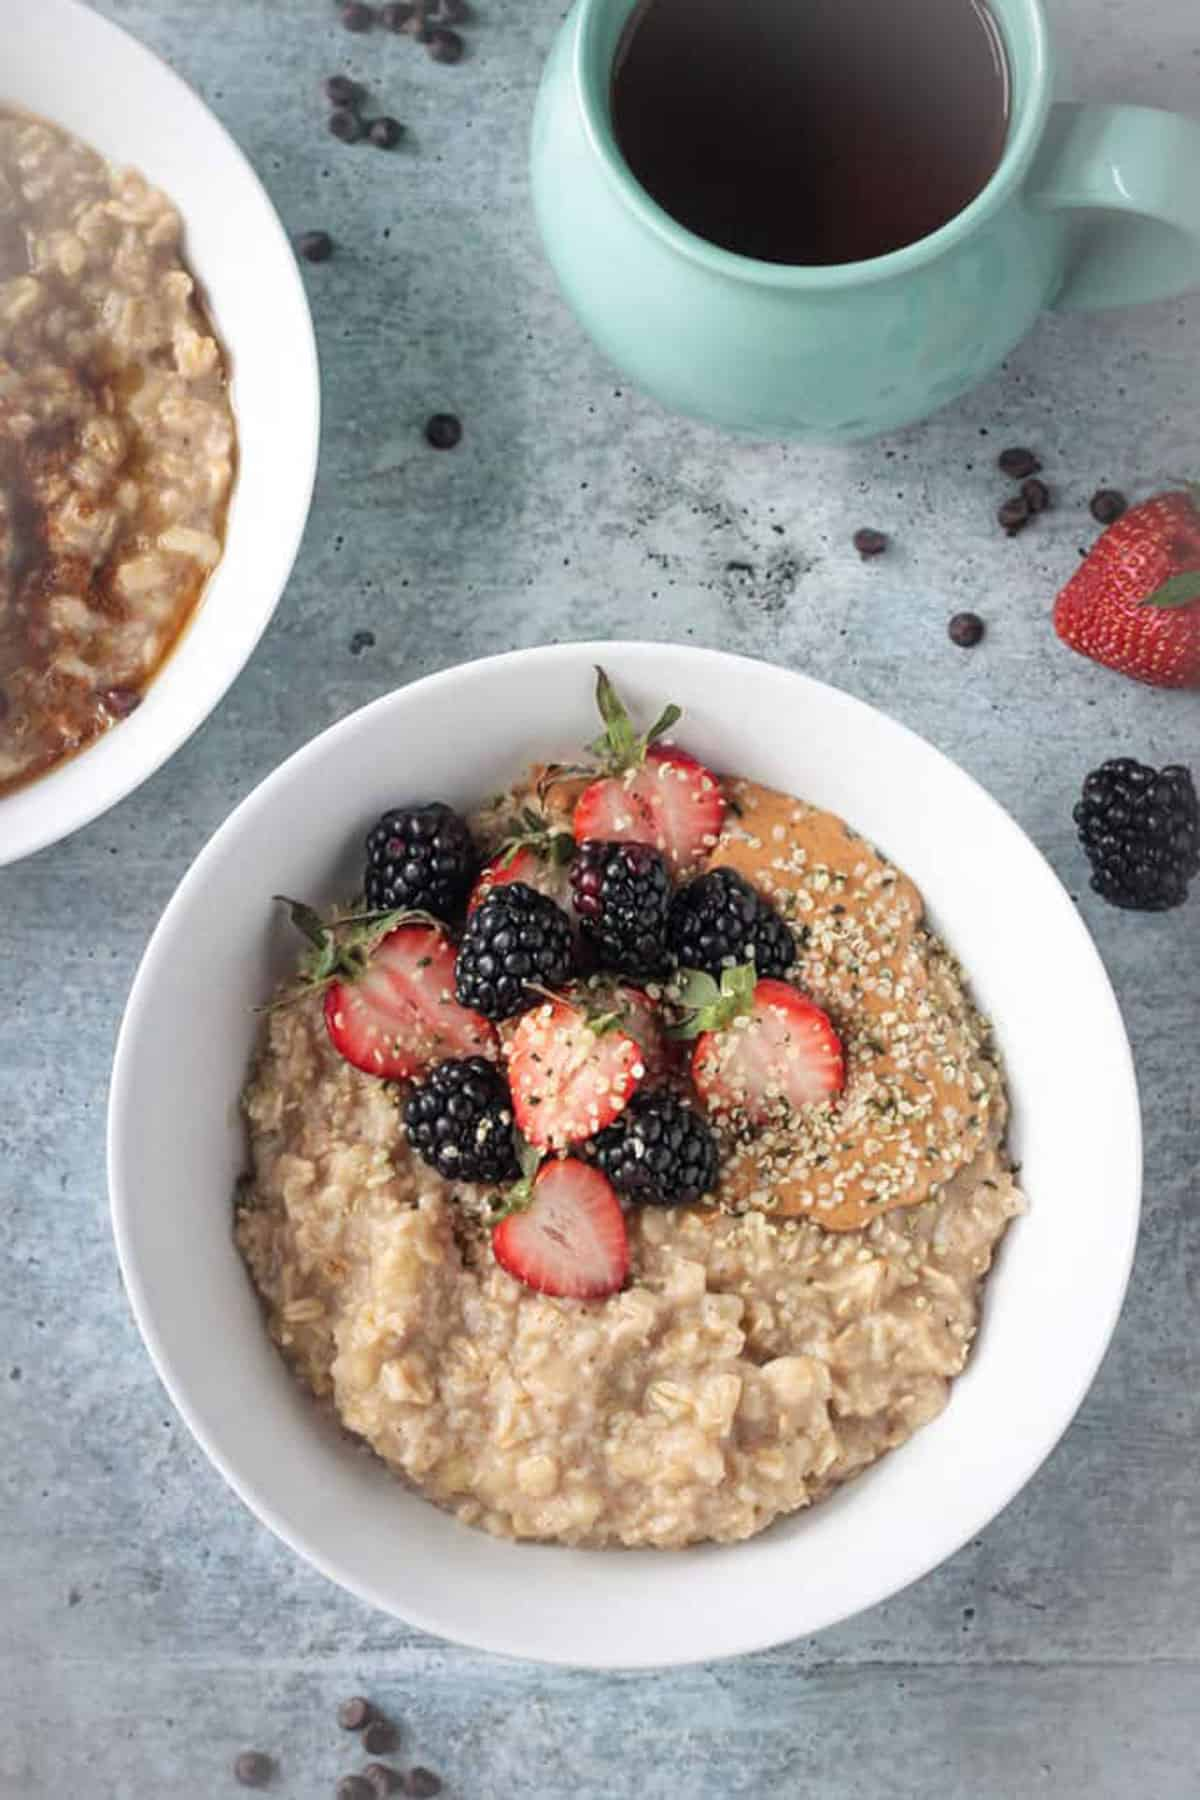 Overhead view of healthy oatmeal topped with berries and hemp seeds.